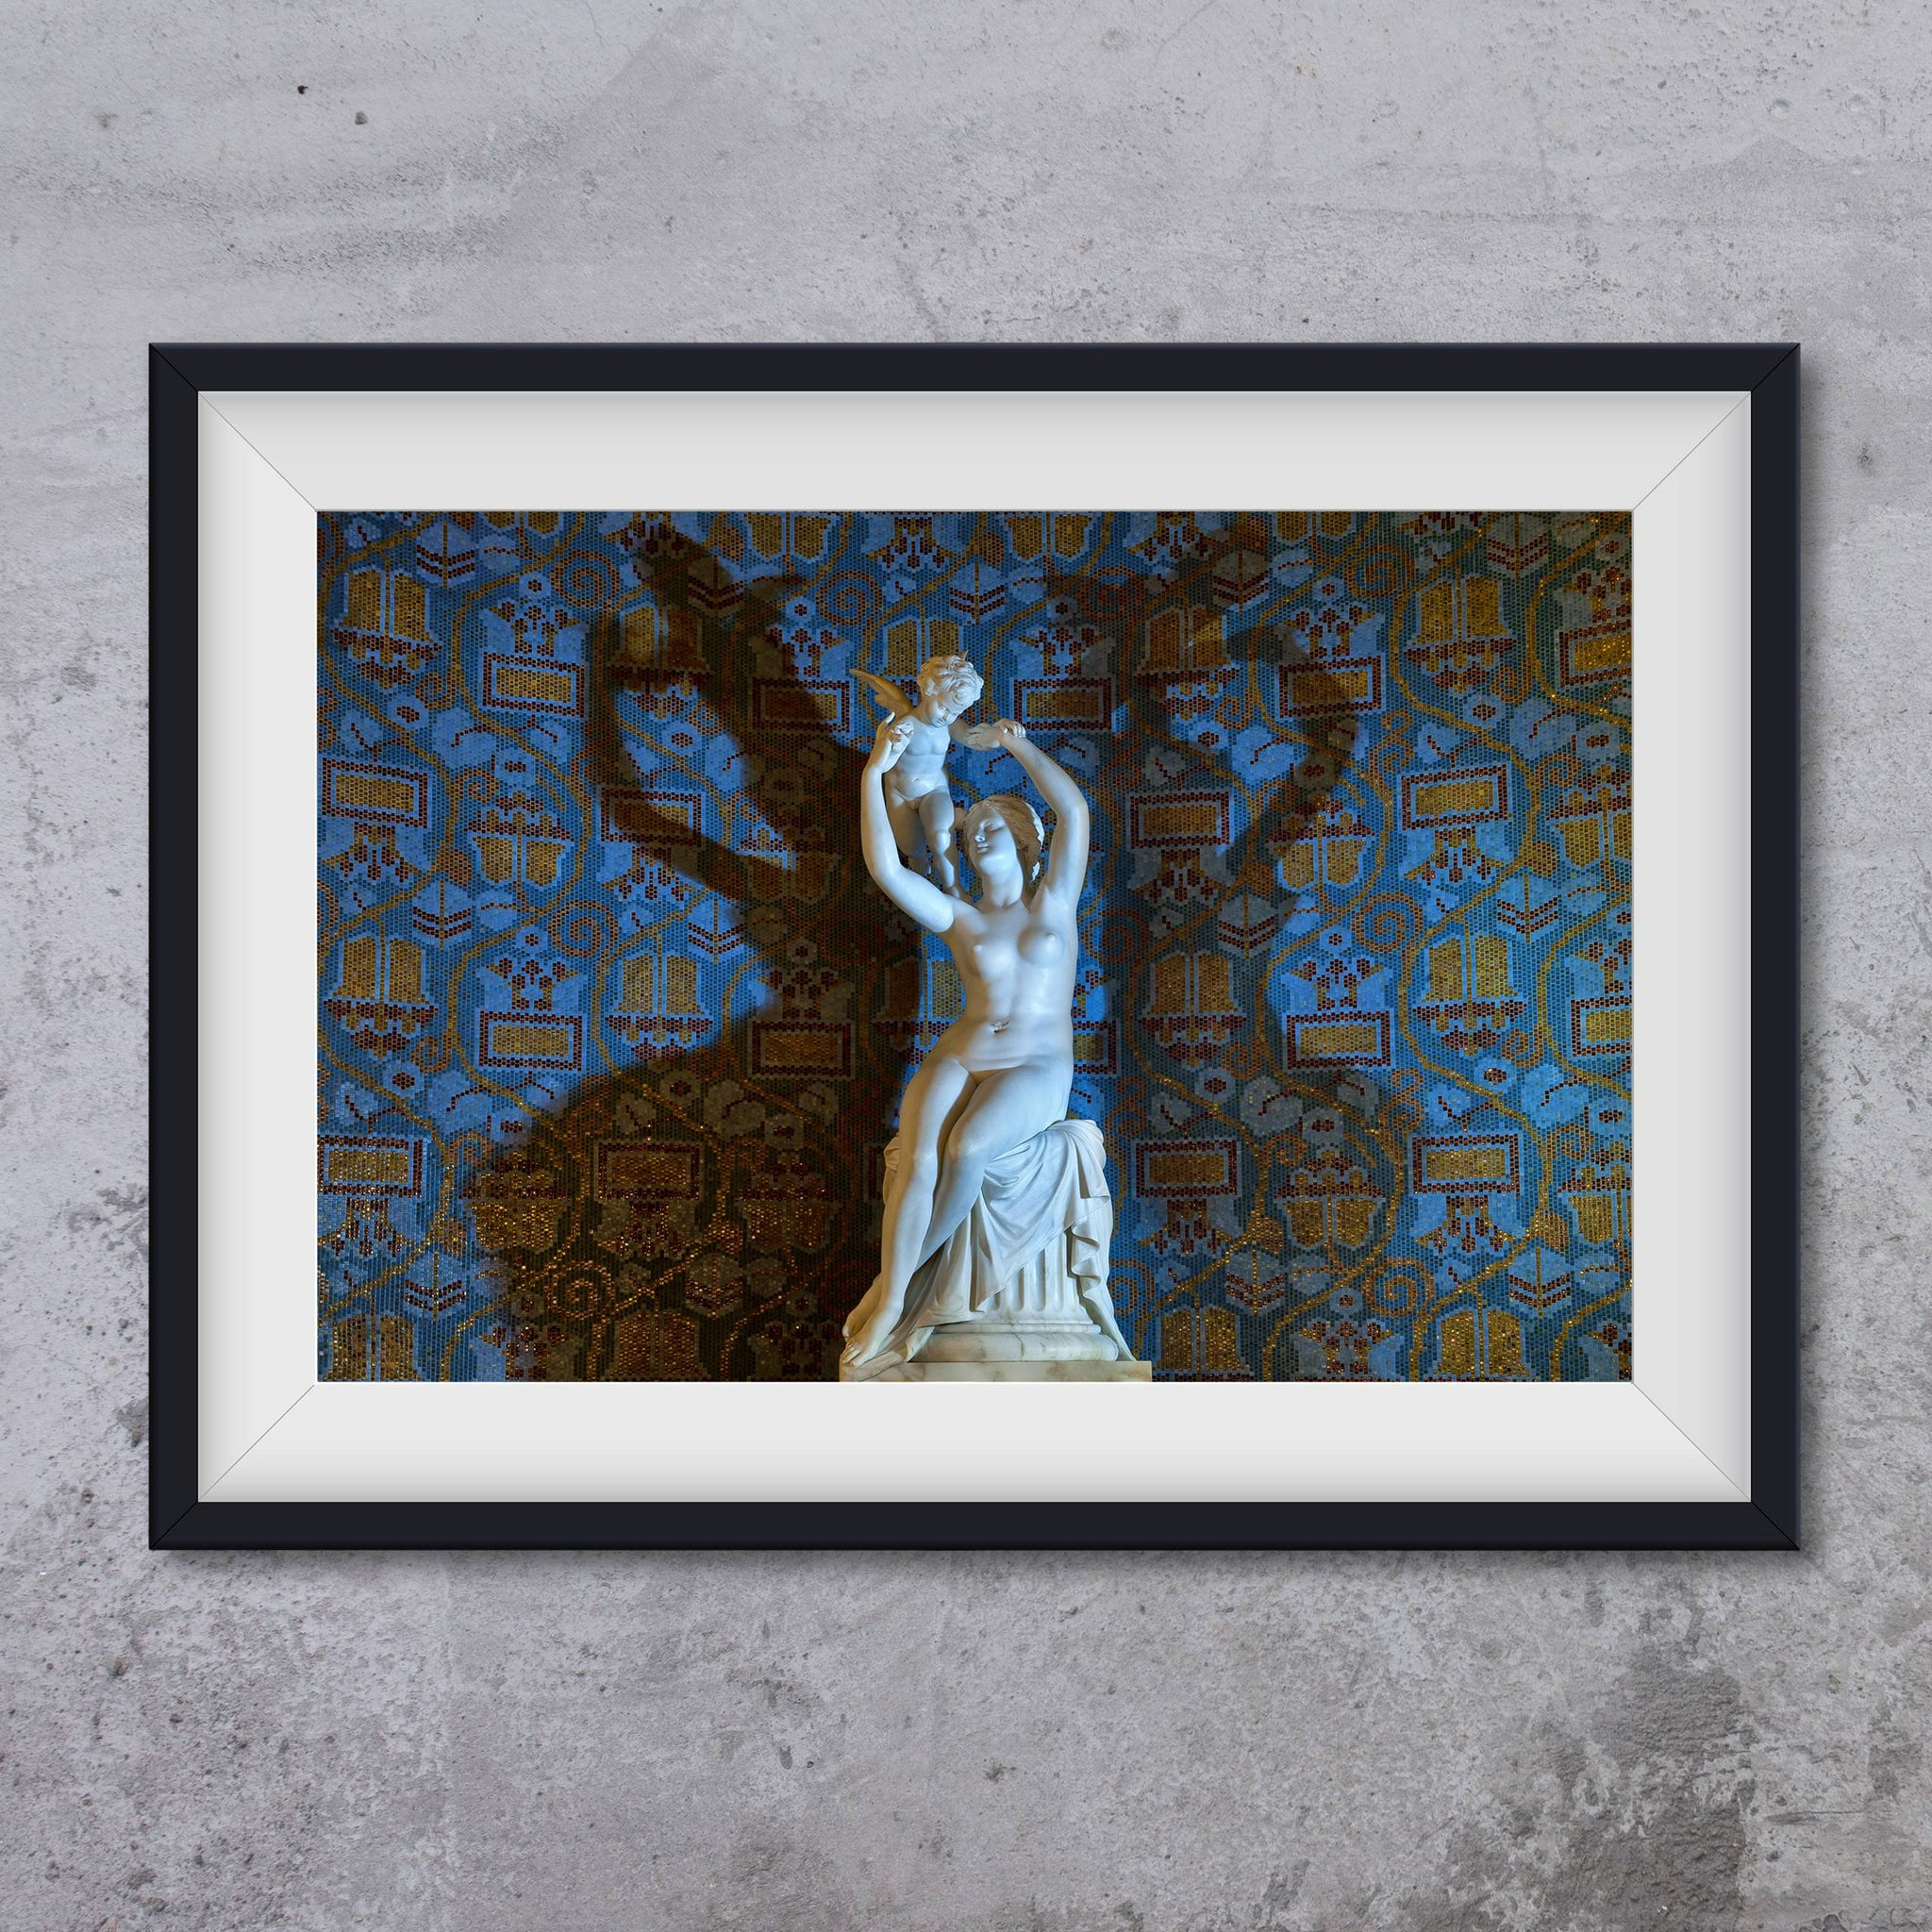 Gellert SPA, Budapest - Statue of Venus and Cupid, photo art print